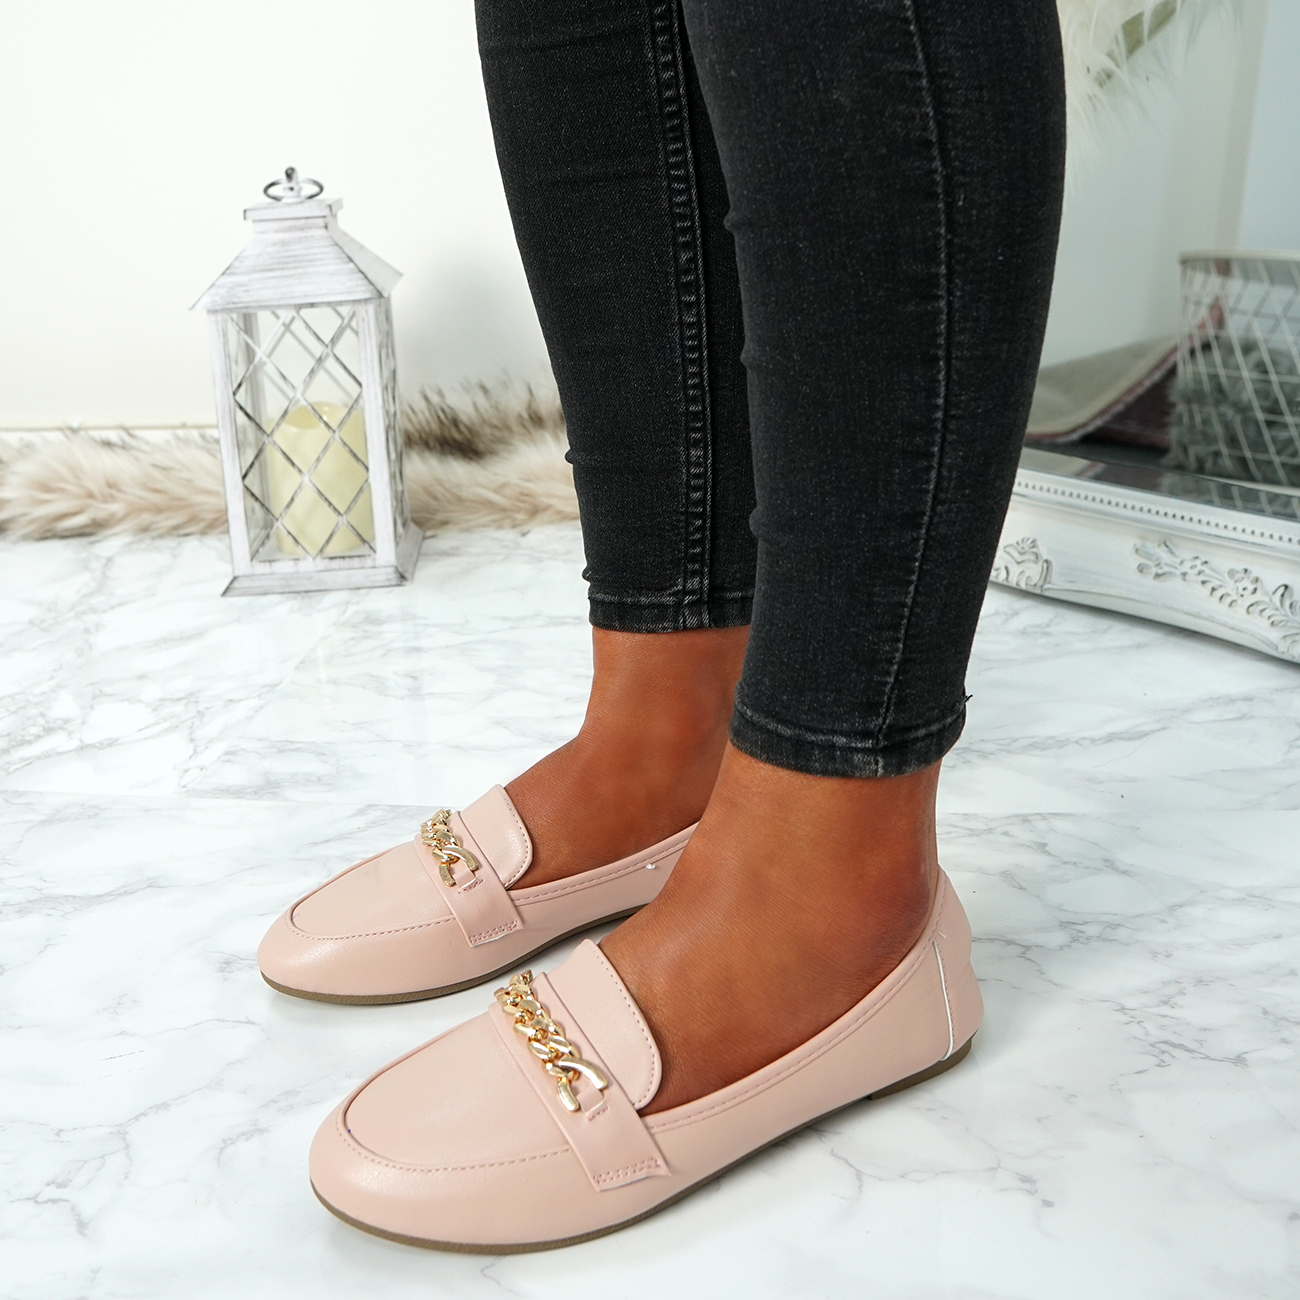 WOMENS-LADIES-CHAIN-SLIP-ON-BALLERINA-LOAFERS-BALLET-DOLLY-PUMPS-SHOES-SIZE thumbnail 33